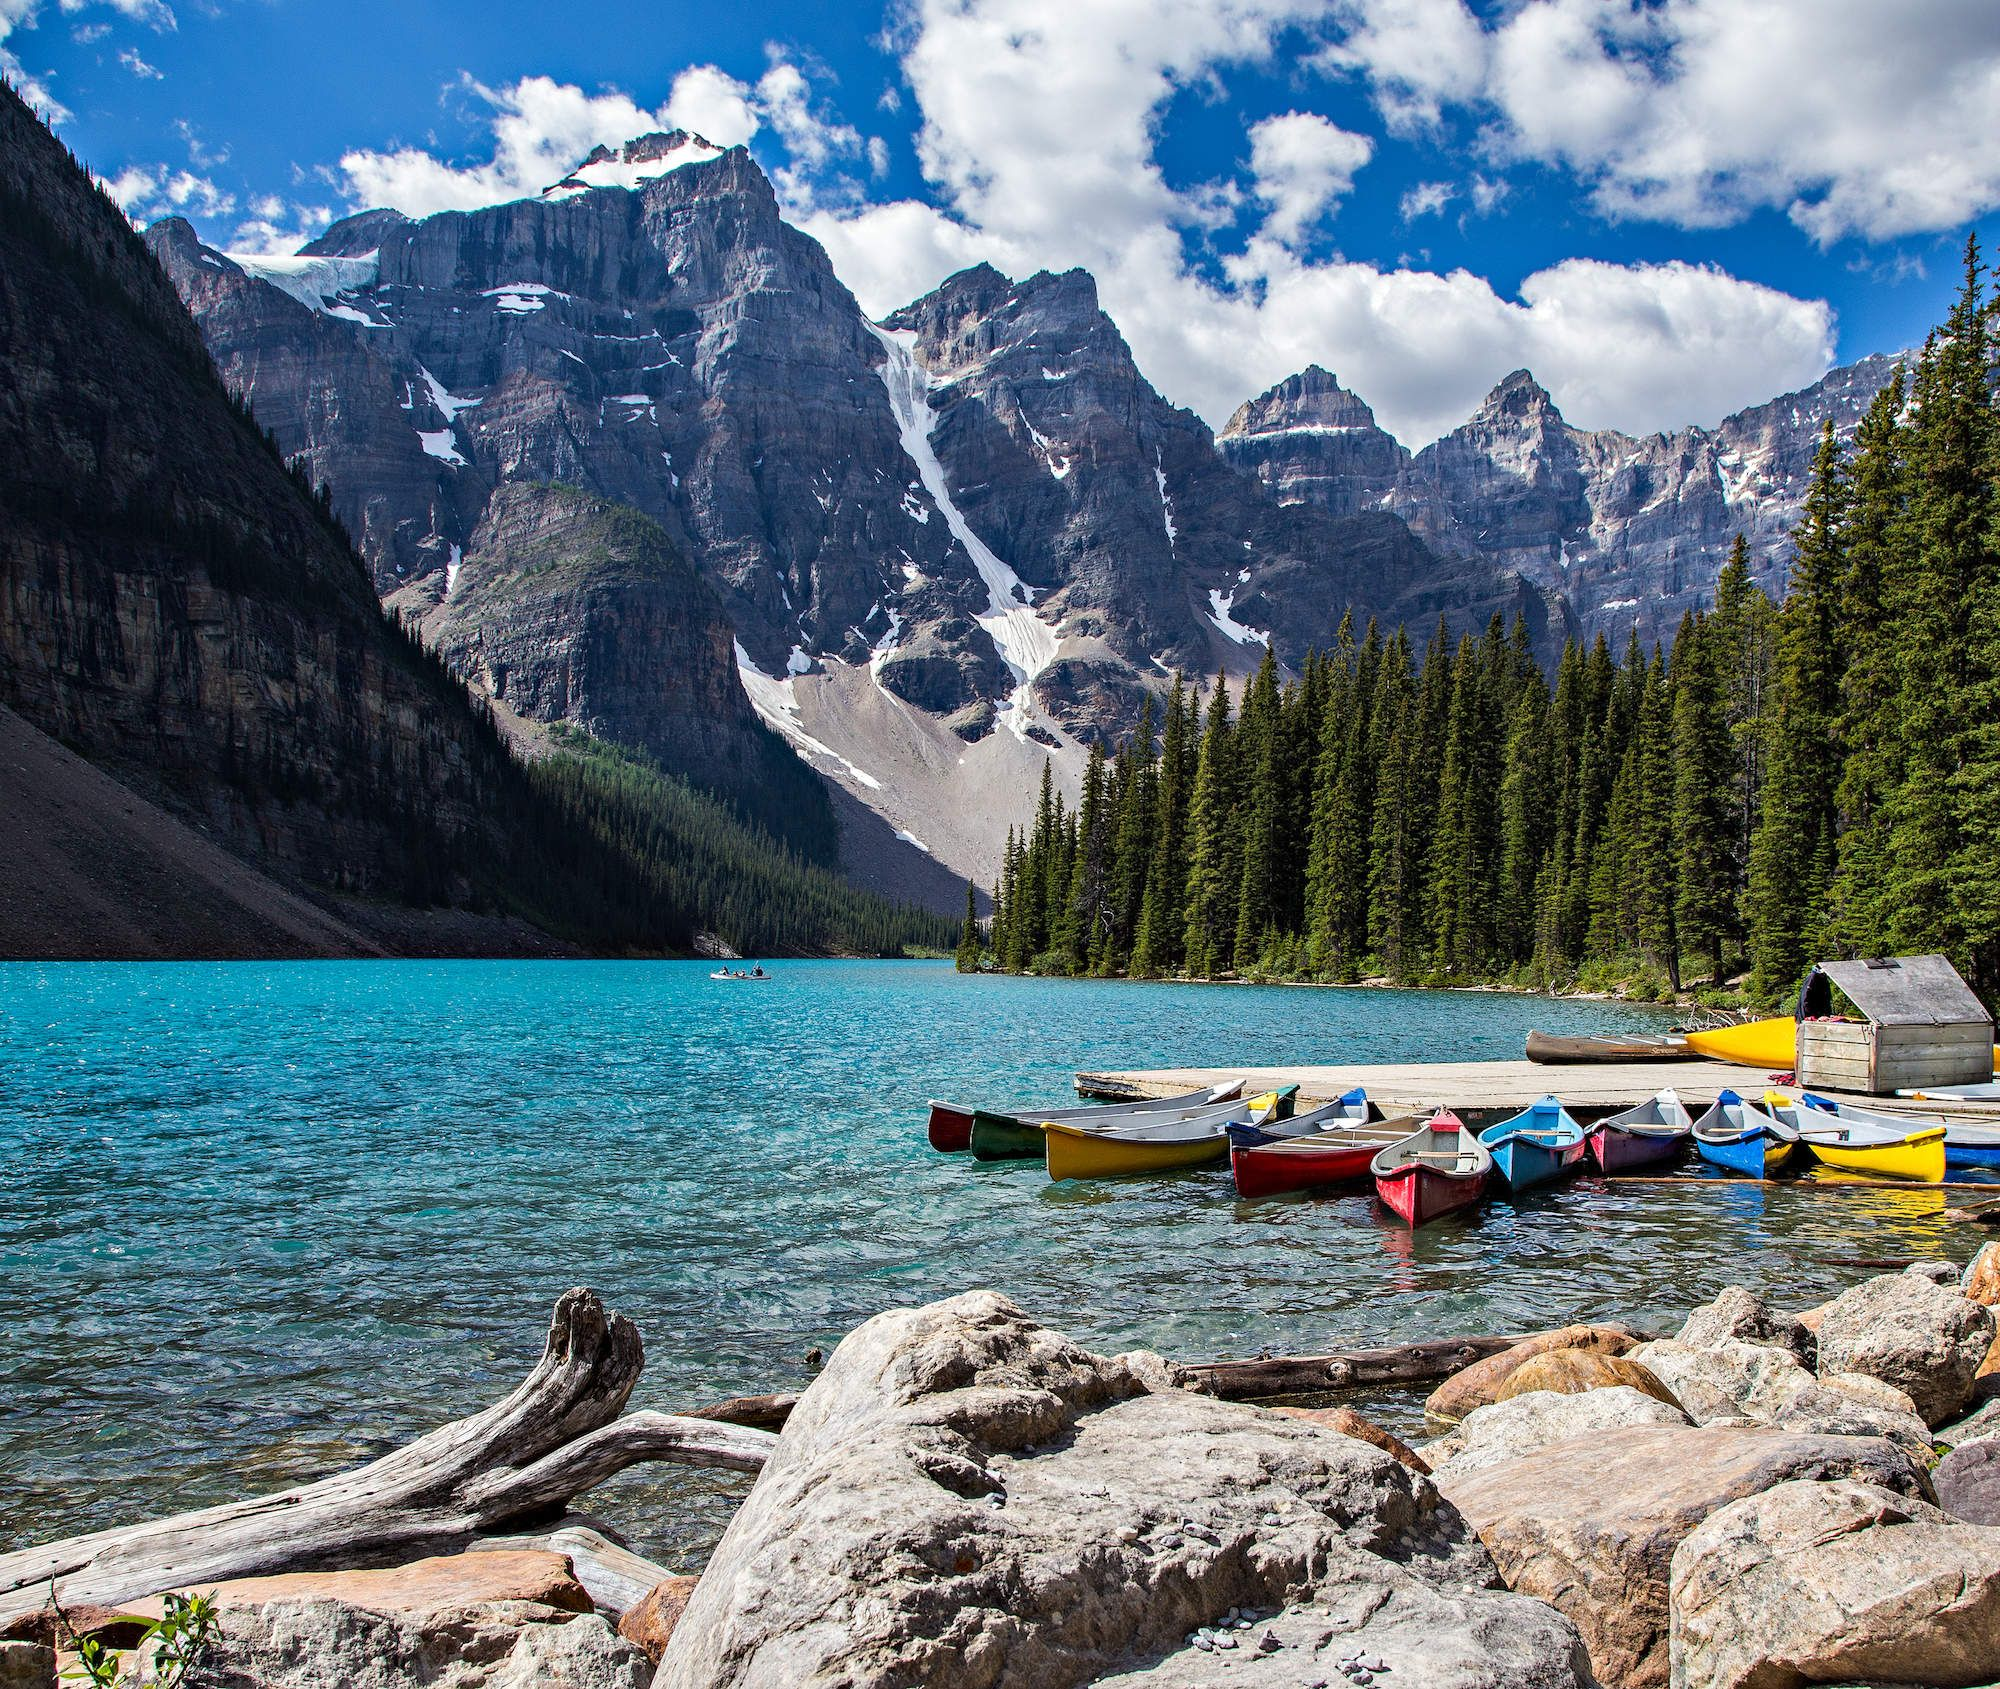 Canada Beautiful Places: The 12 Most Beautiful Places In Canada You Need To Visit